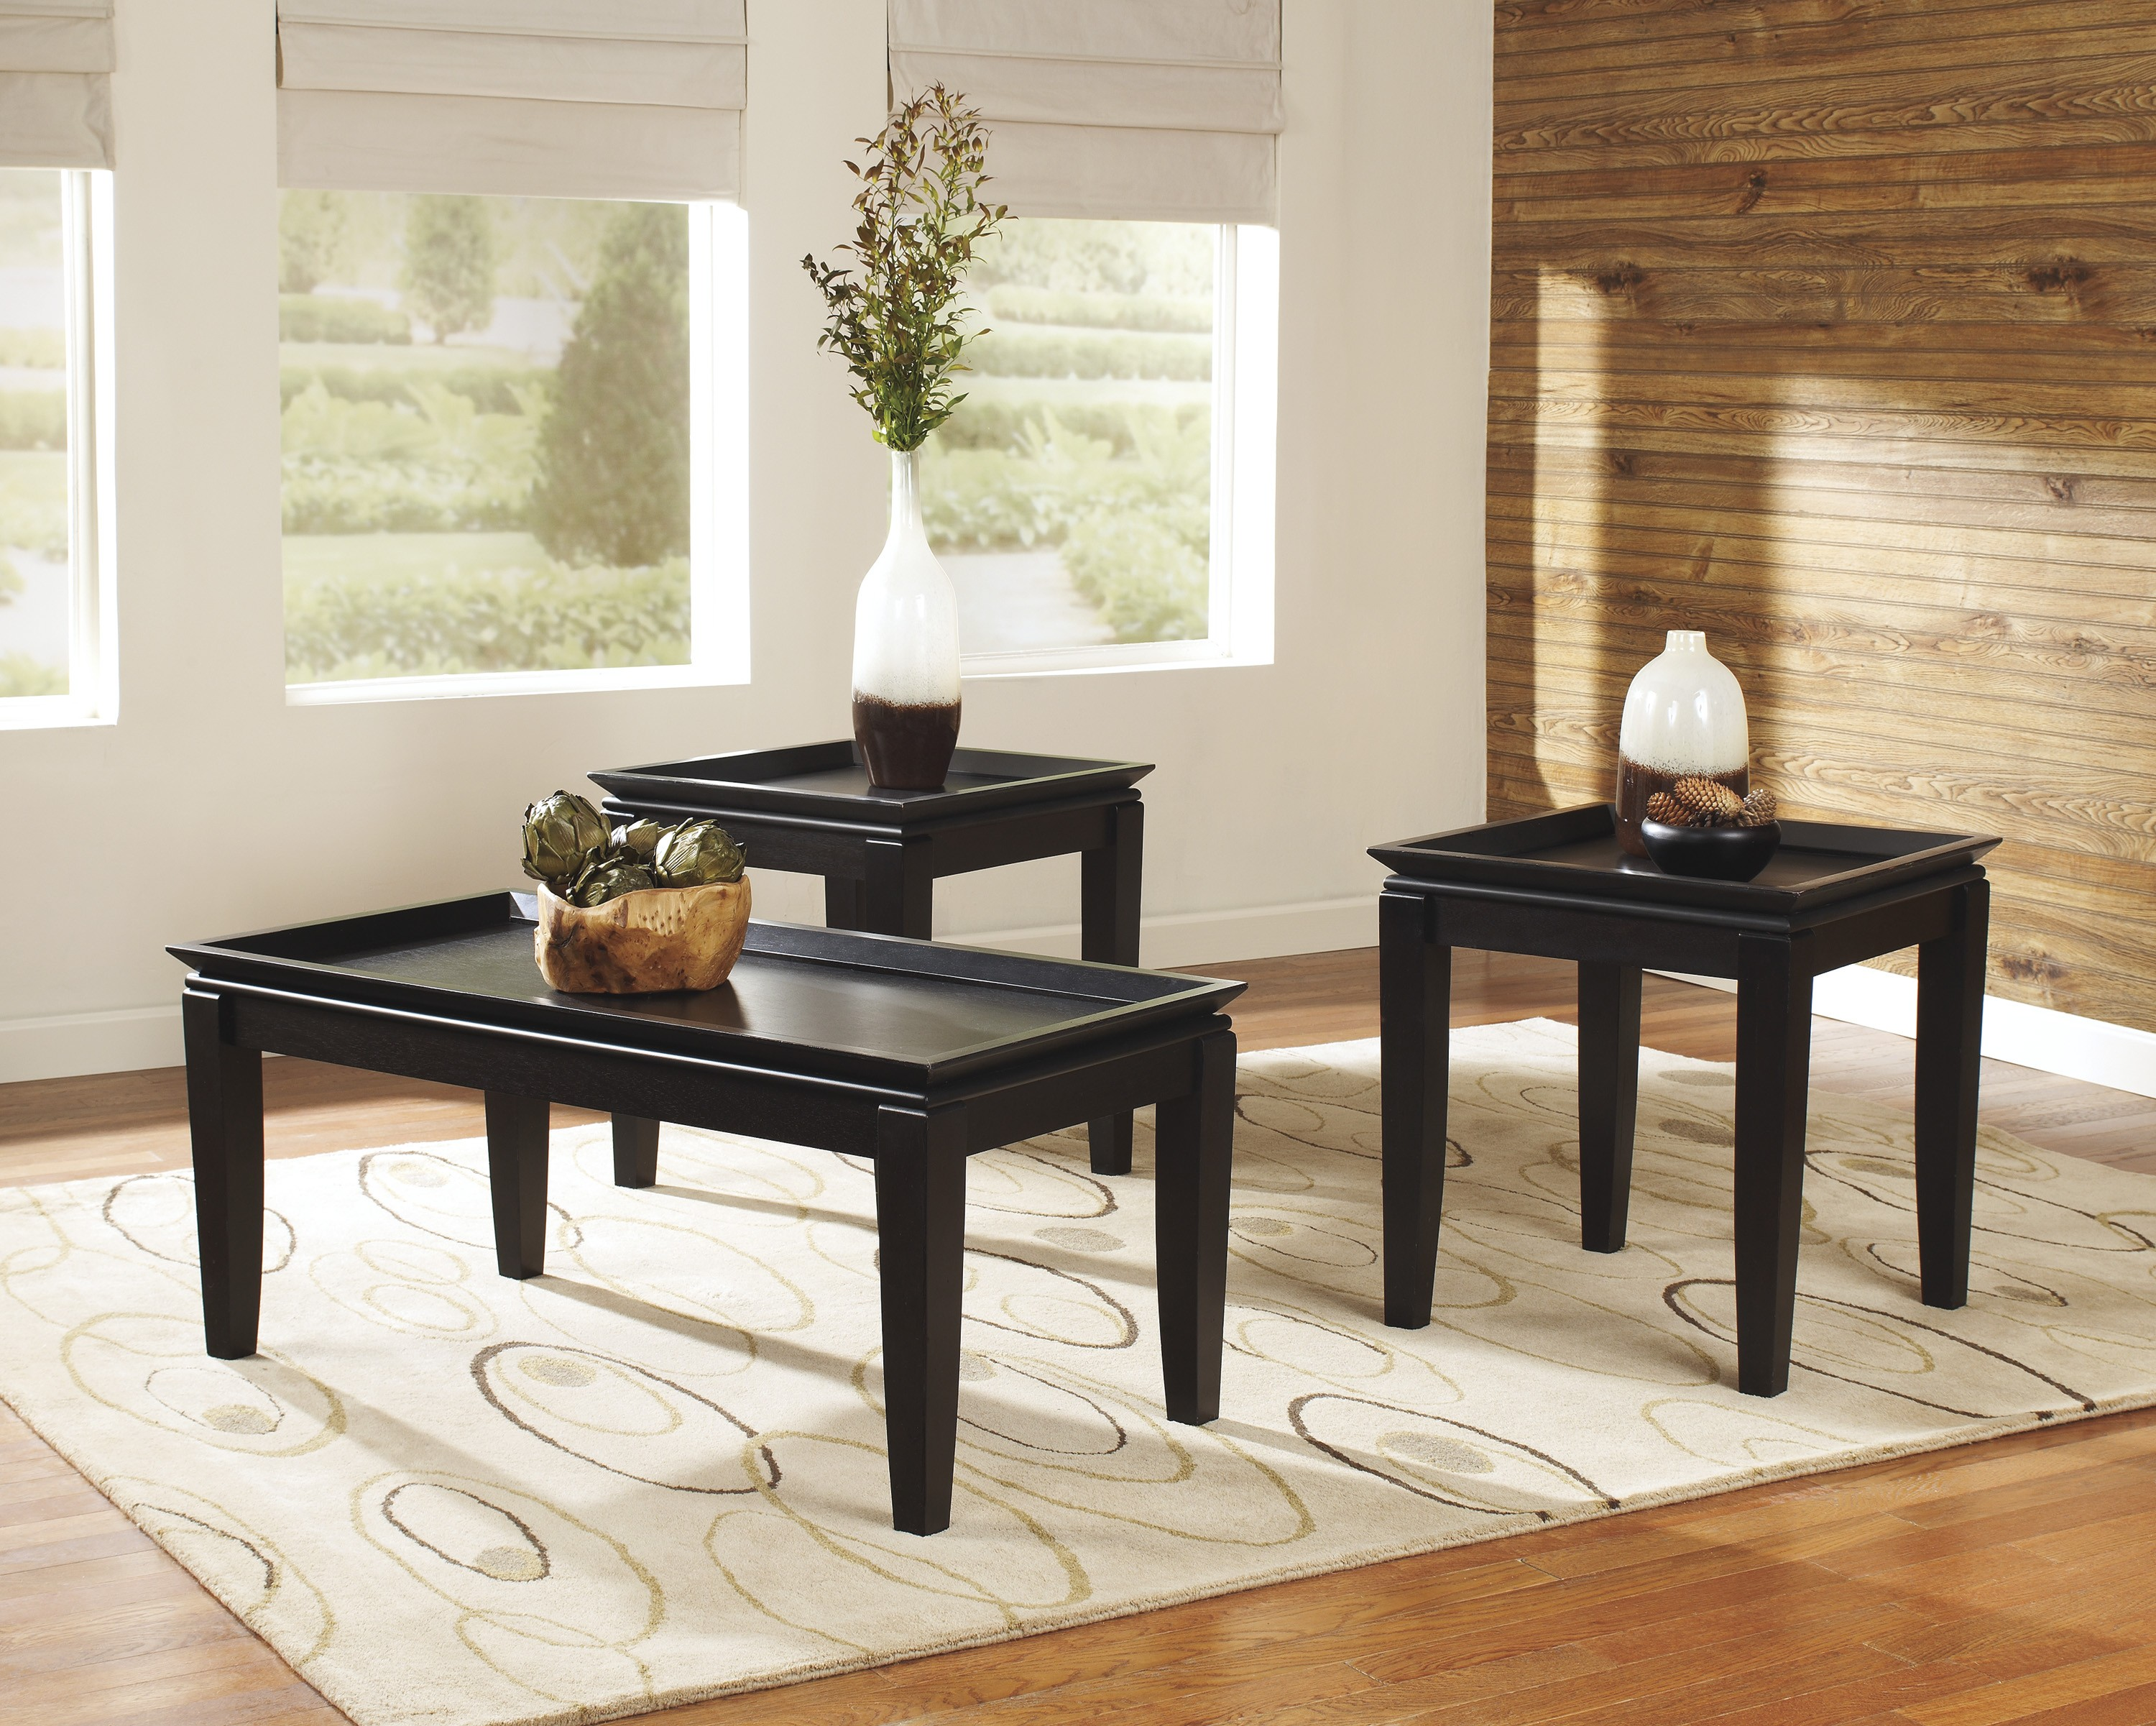 coffee tables ideas ashley furniture and end cool delormy this adorable interior design unqiue decoration vintage trunk mission style couch behind the table ikea laura green coat